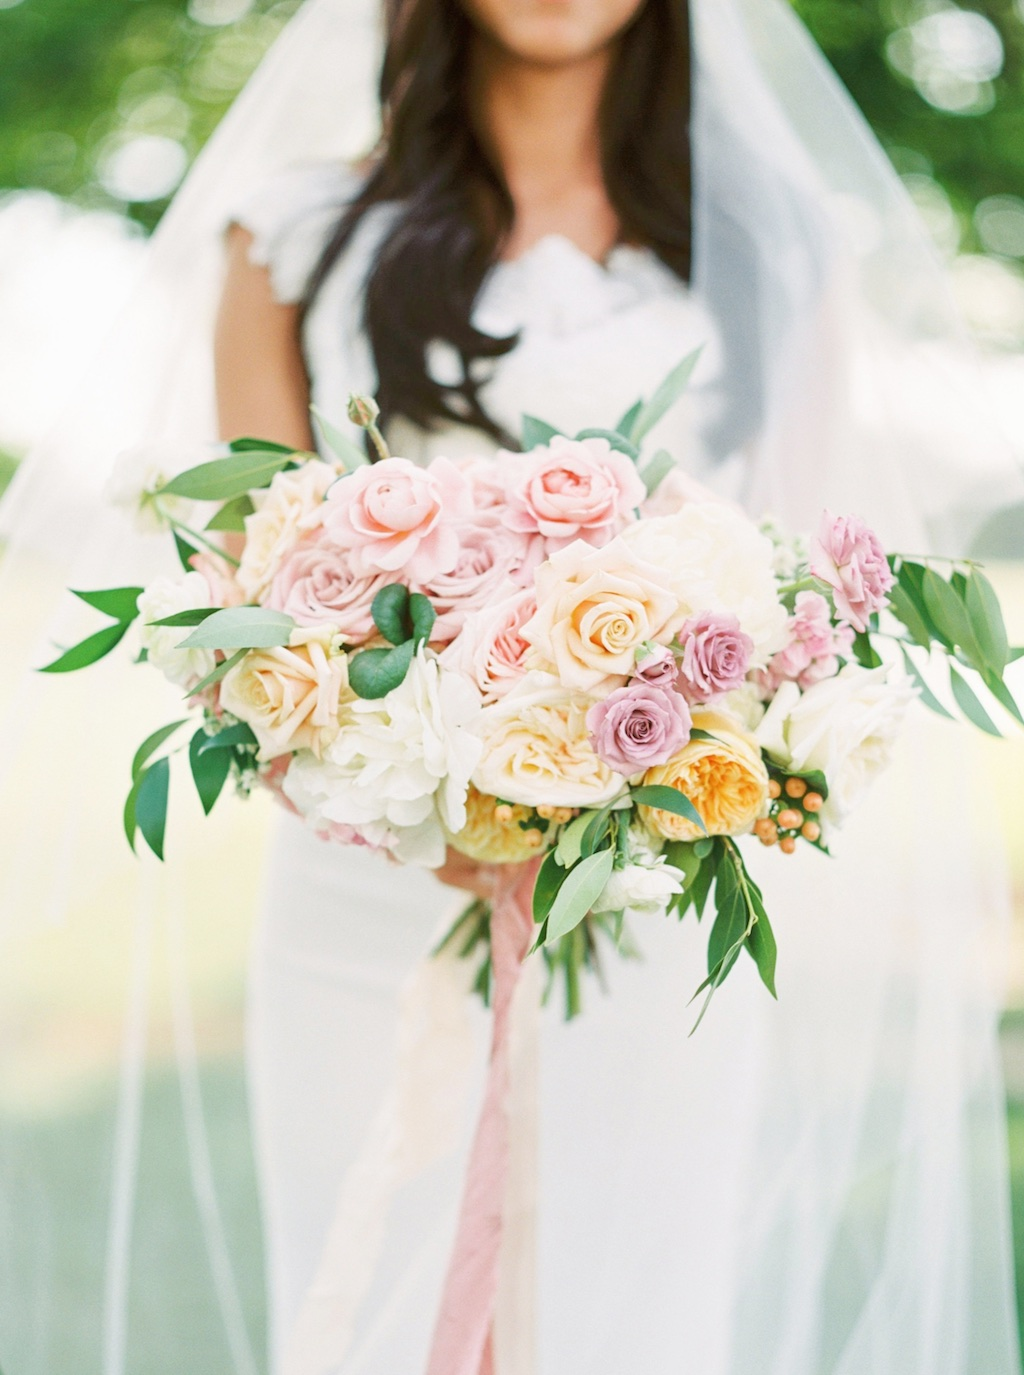 stunning summer wedding bouquets, gorgeous summer wedding bouquets, romantic lavender peach mauve blush pink wedding bouquet inspiration ideas utah calie rose